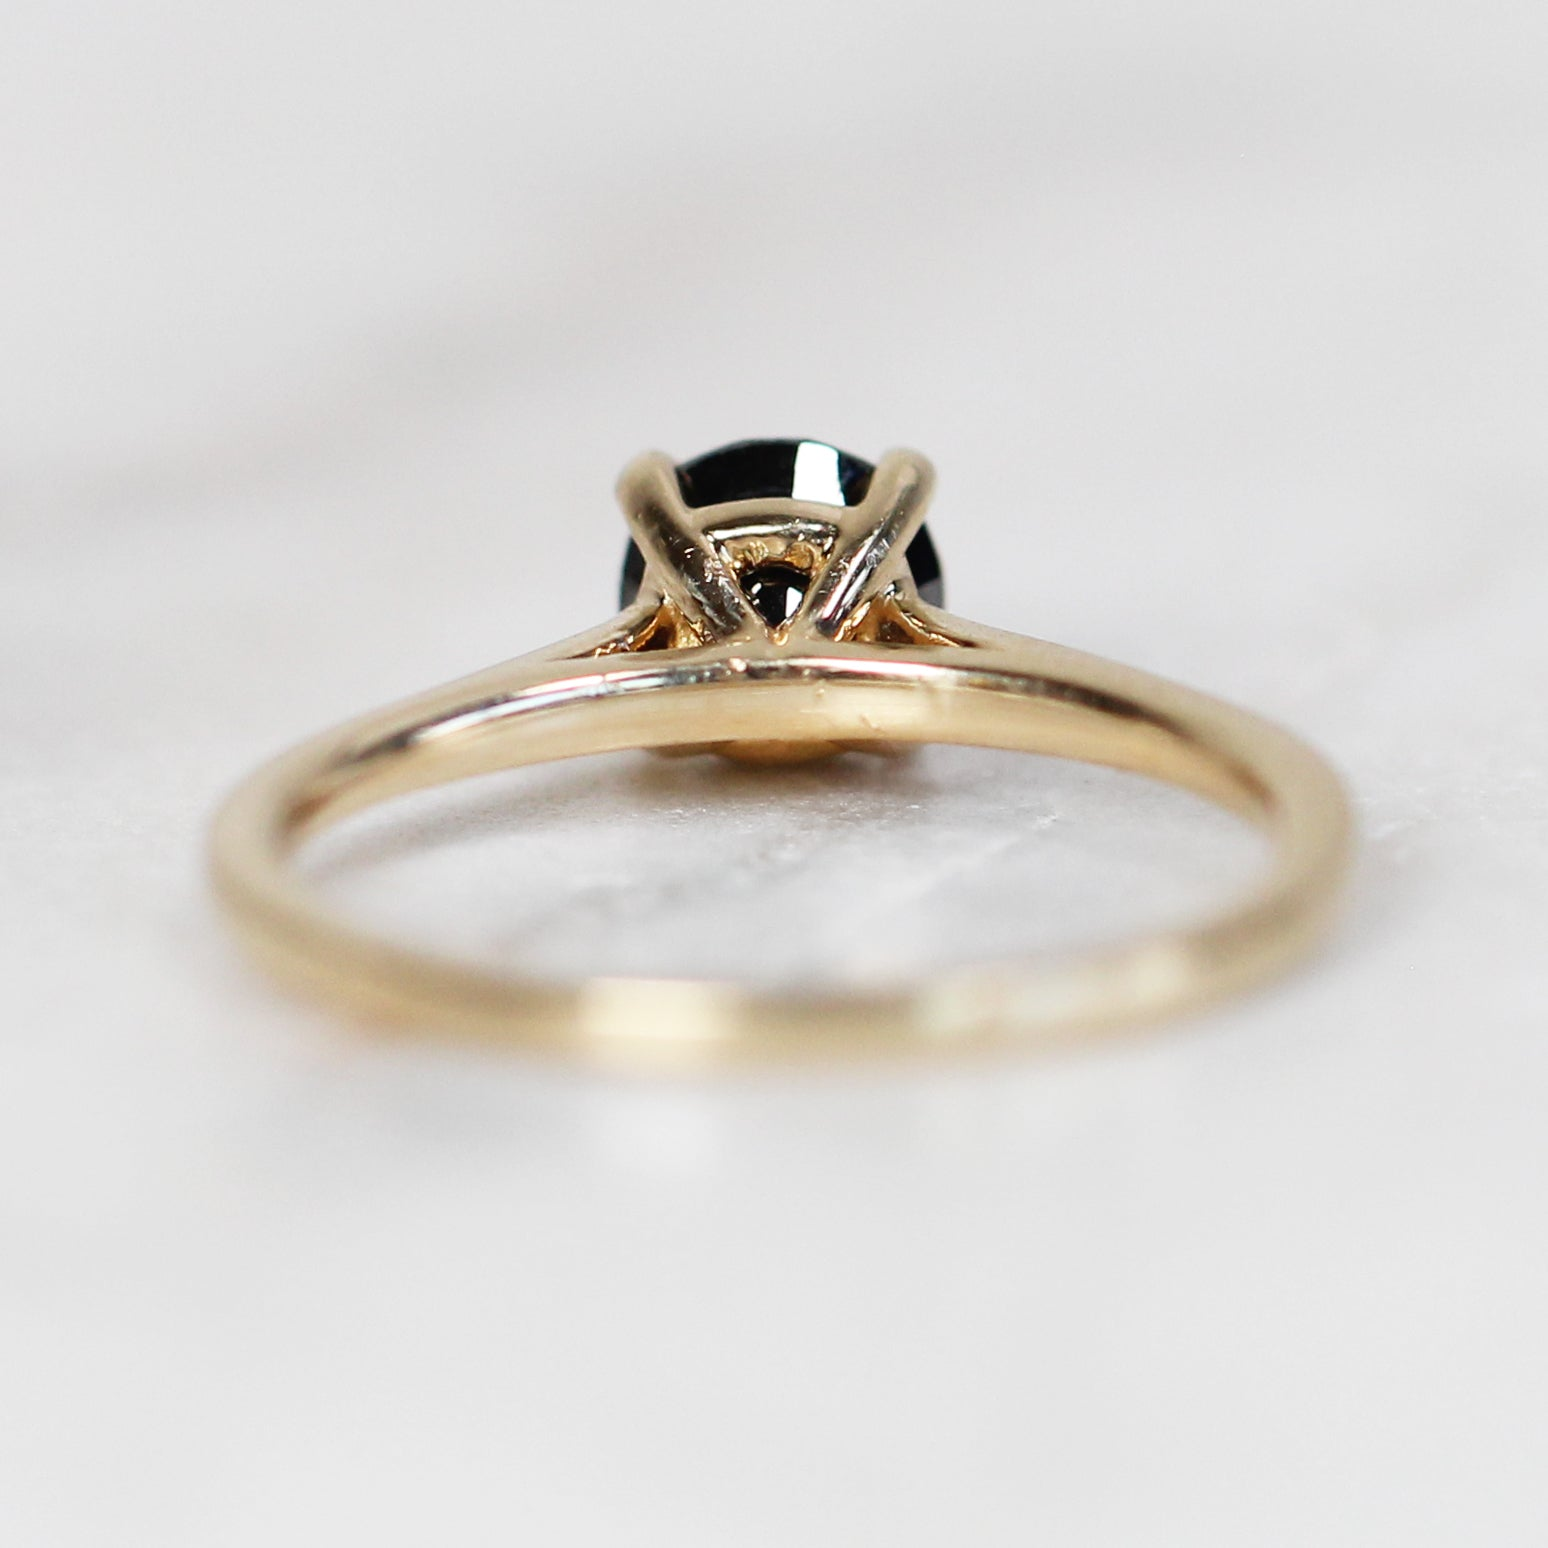 Elle - 1 carat Black diamond ring - Your choice of gold